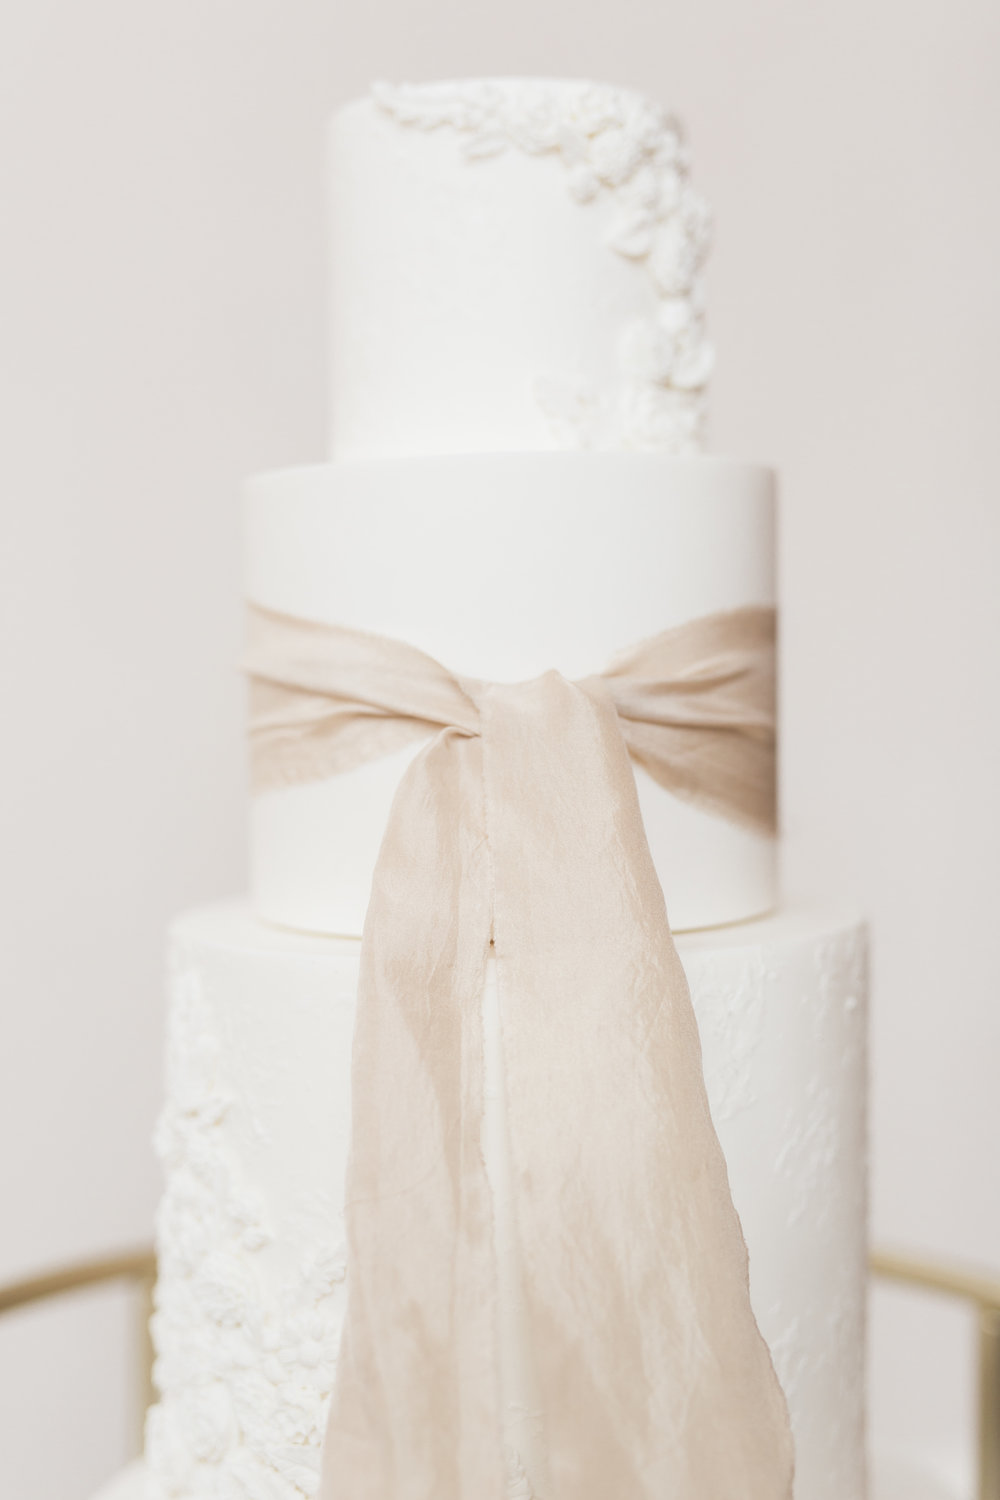 Textured White Wedding Cake | European Inspired Winter Wedding